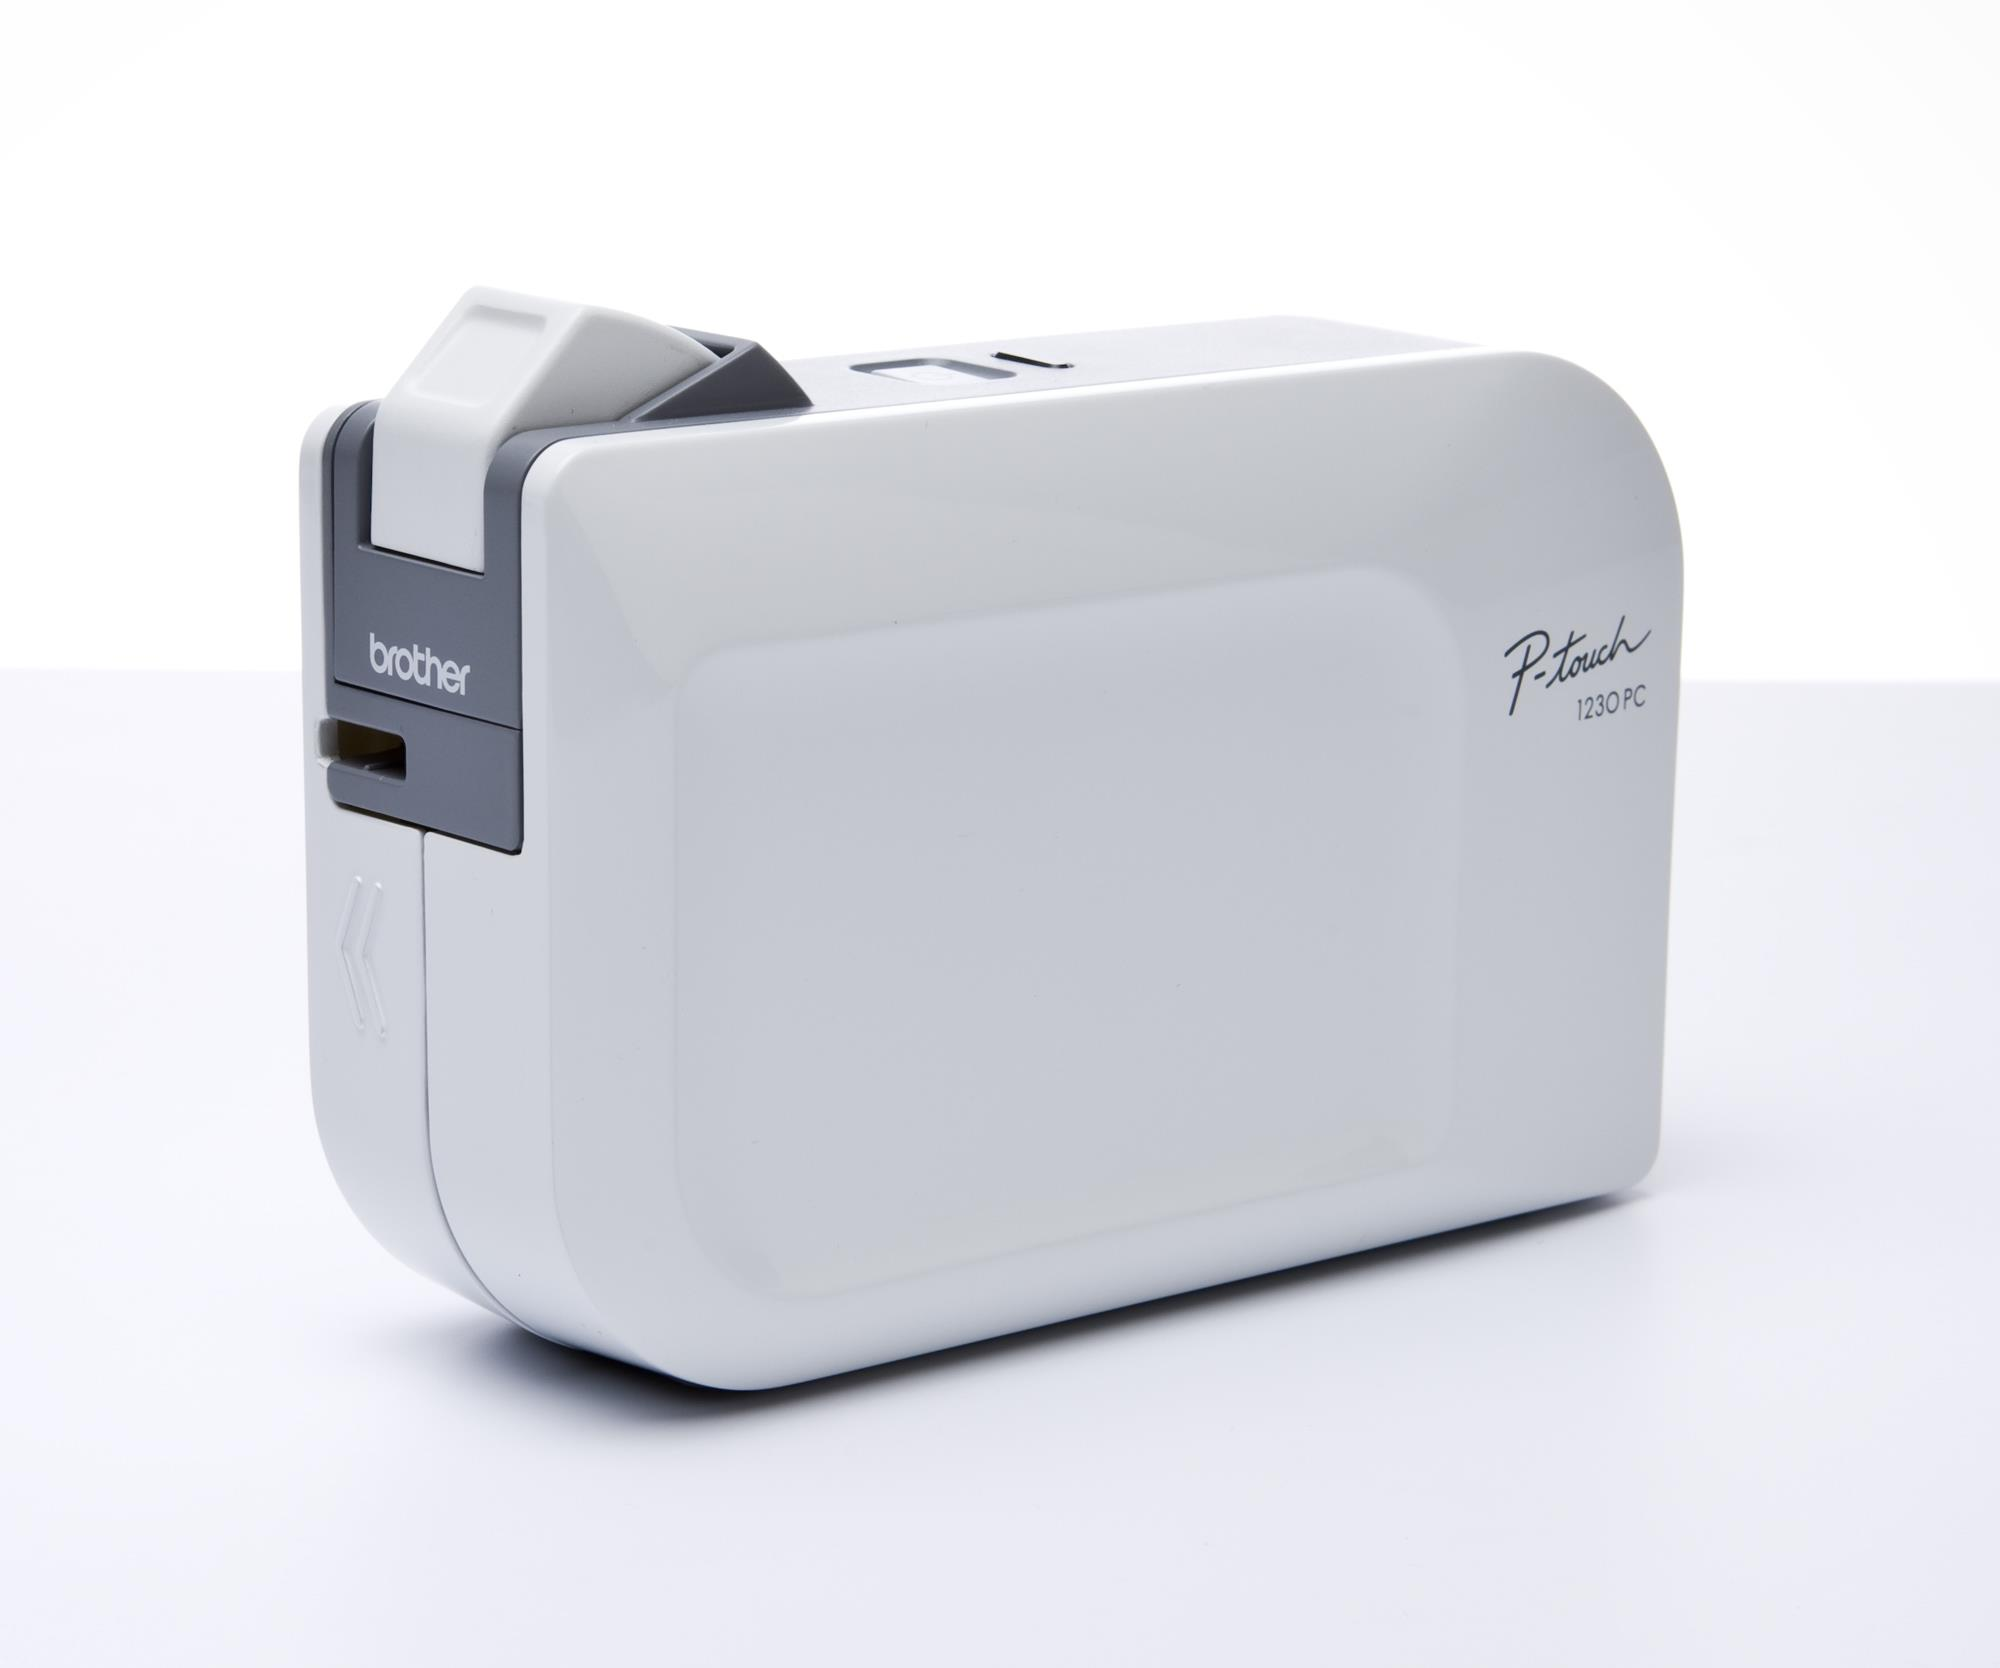 P-touch P700